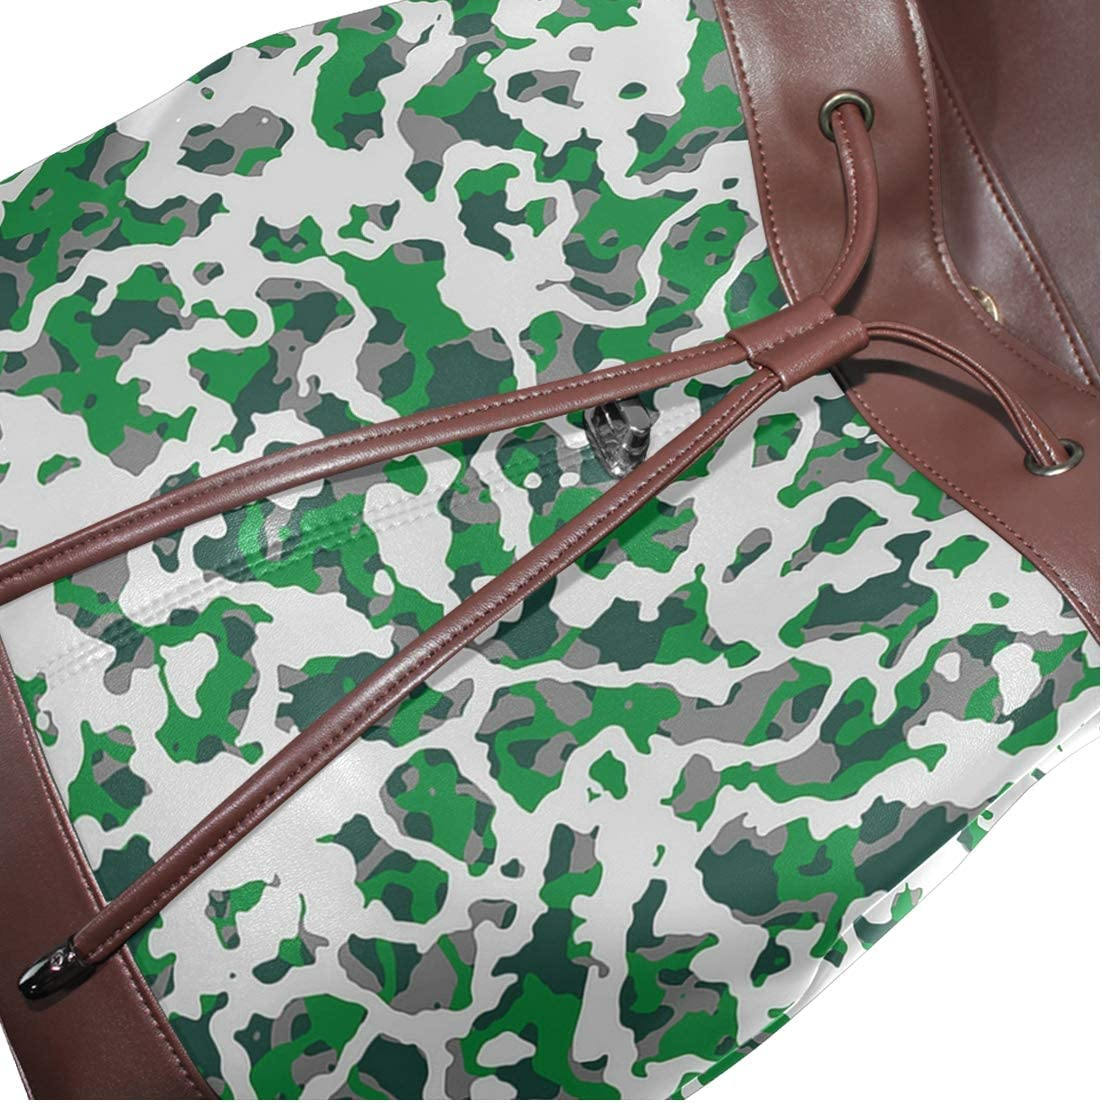 Unisex PU Leather Backpack Camo Green and Grey Print Womens Casual Daypack Mens Travel Sports Bag Boys College Bookbag